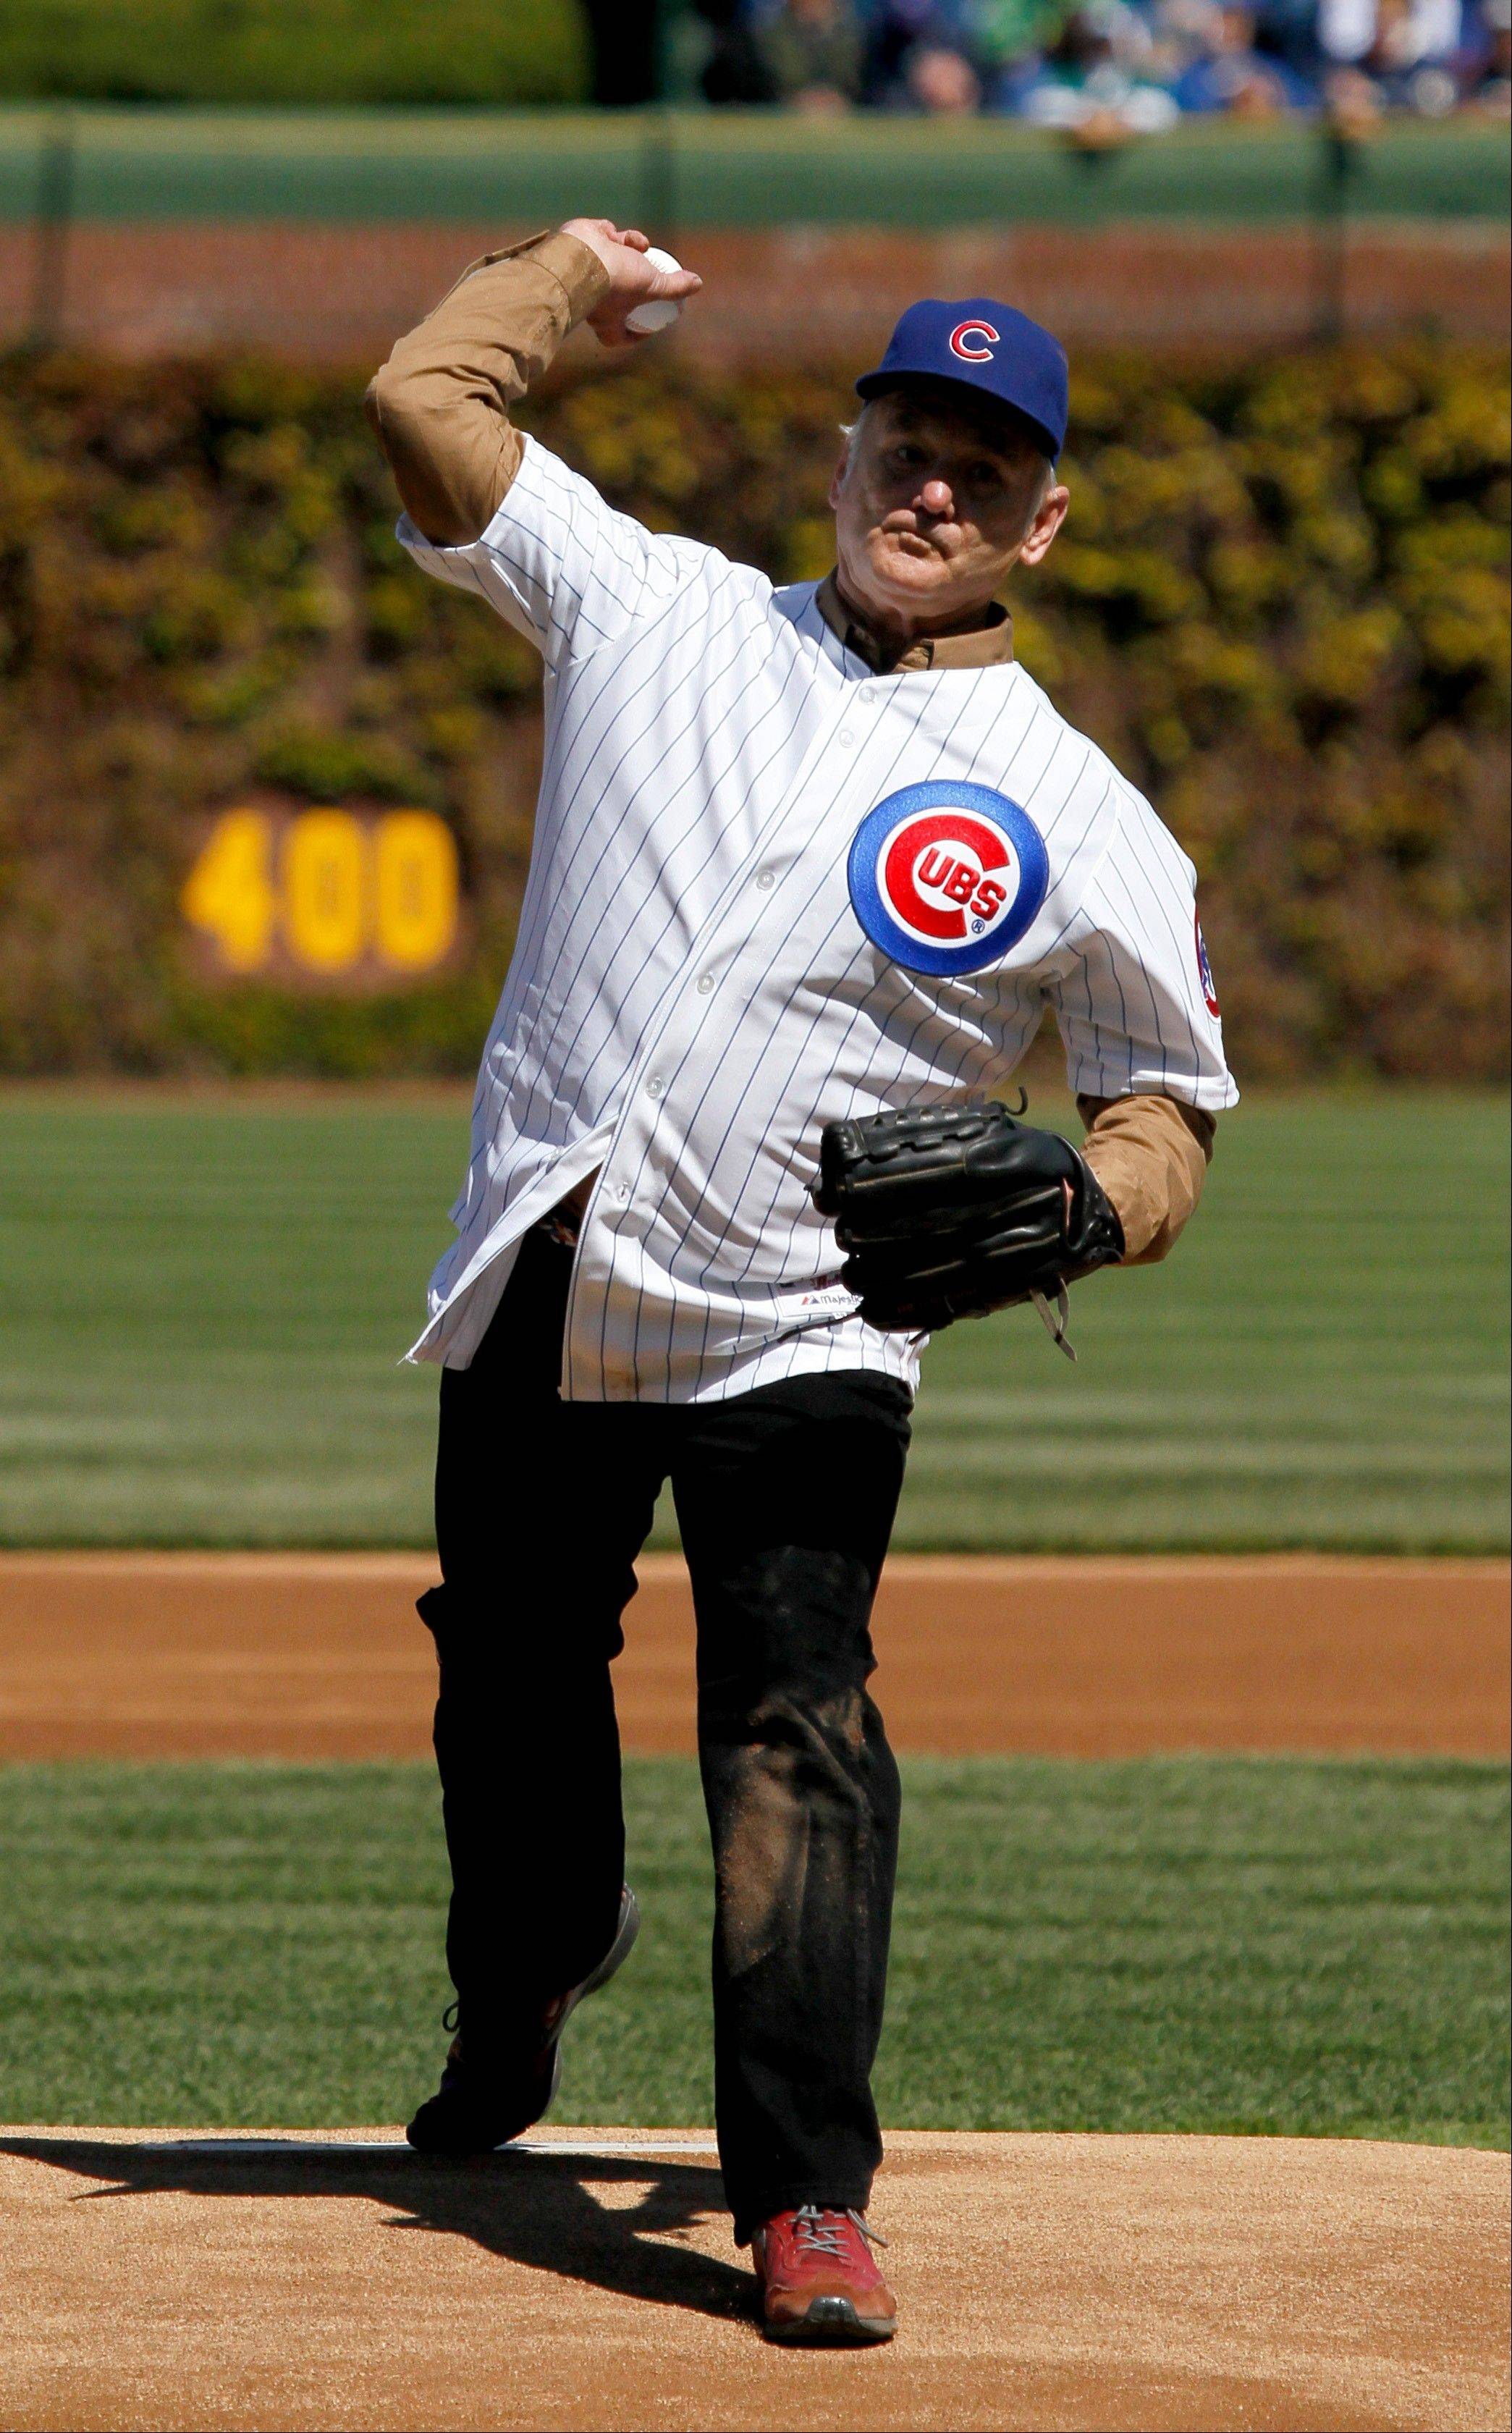 Actor Bill Murray throws out a ceremonial first pitch before an opening day baseball game between the Chicago Cubs and the Washington Nationals Thursday, April 5, 2012, in Chicago. The Nationals won 2-1.